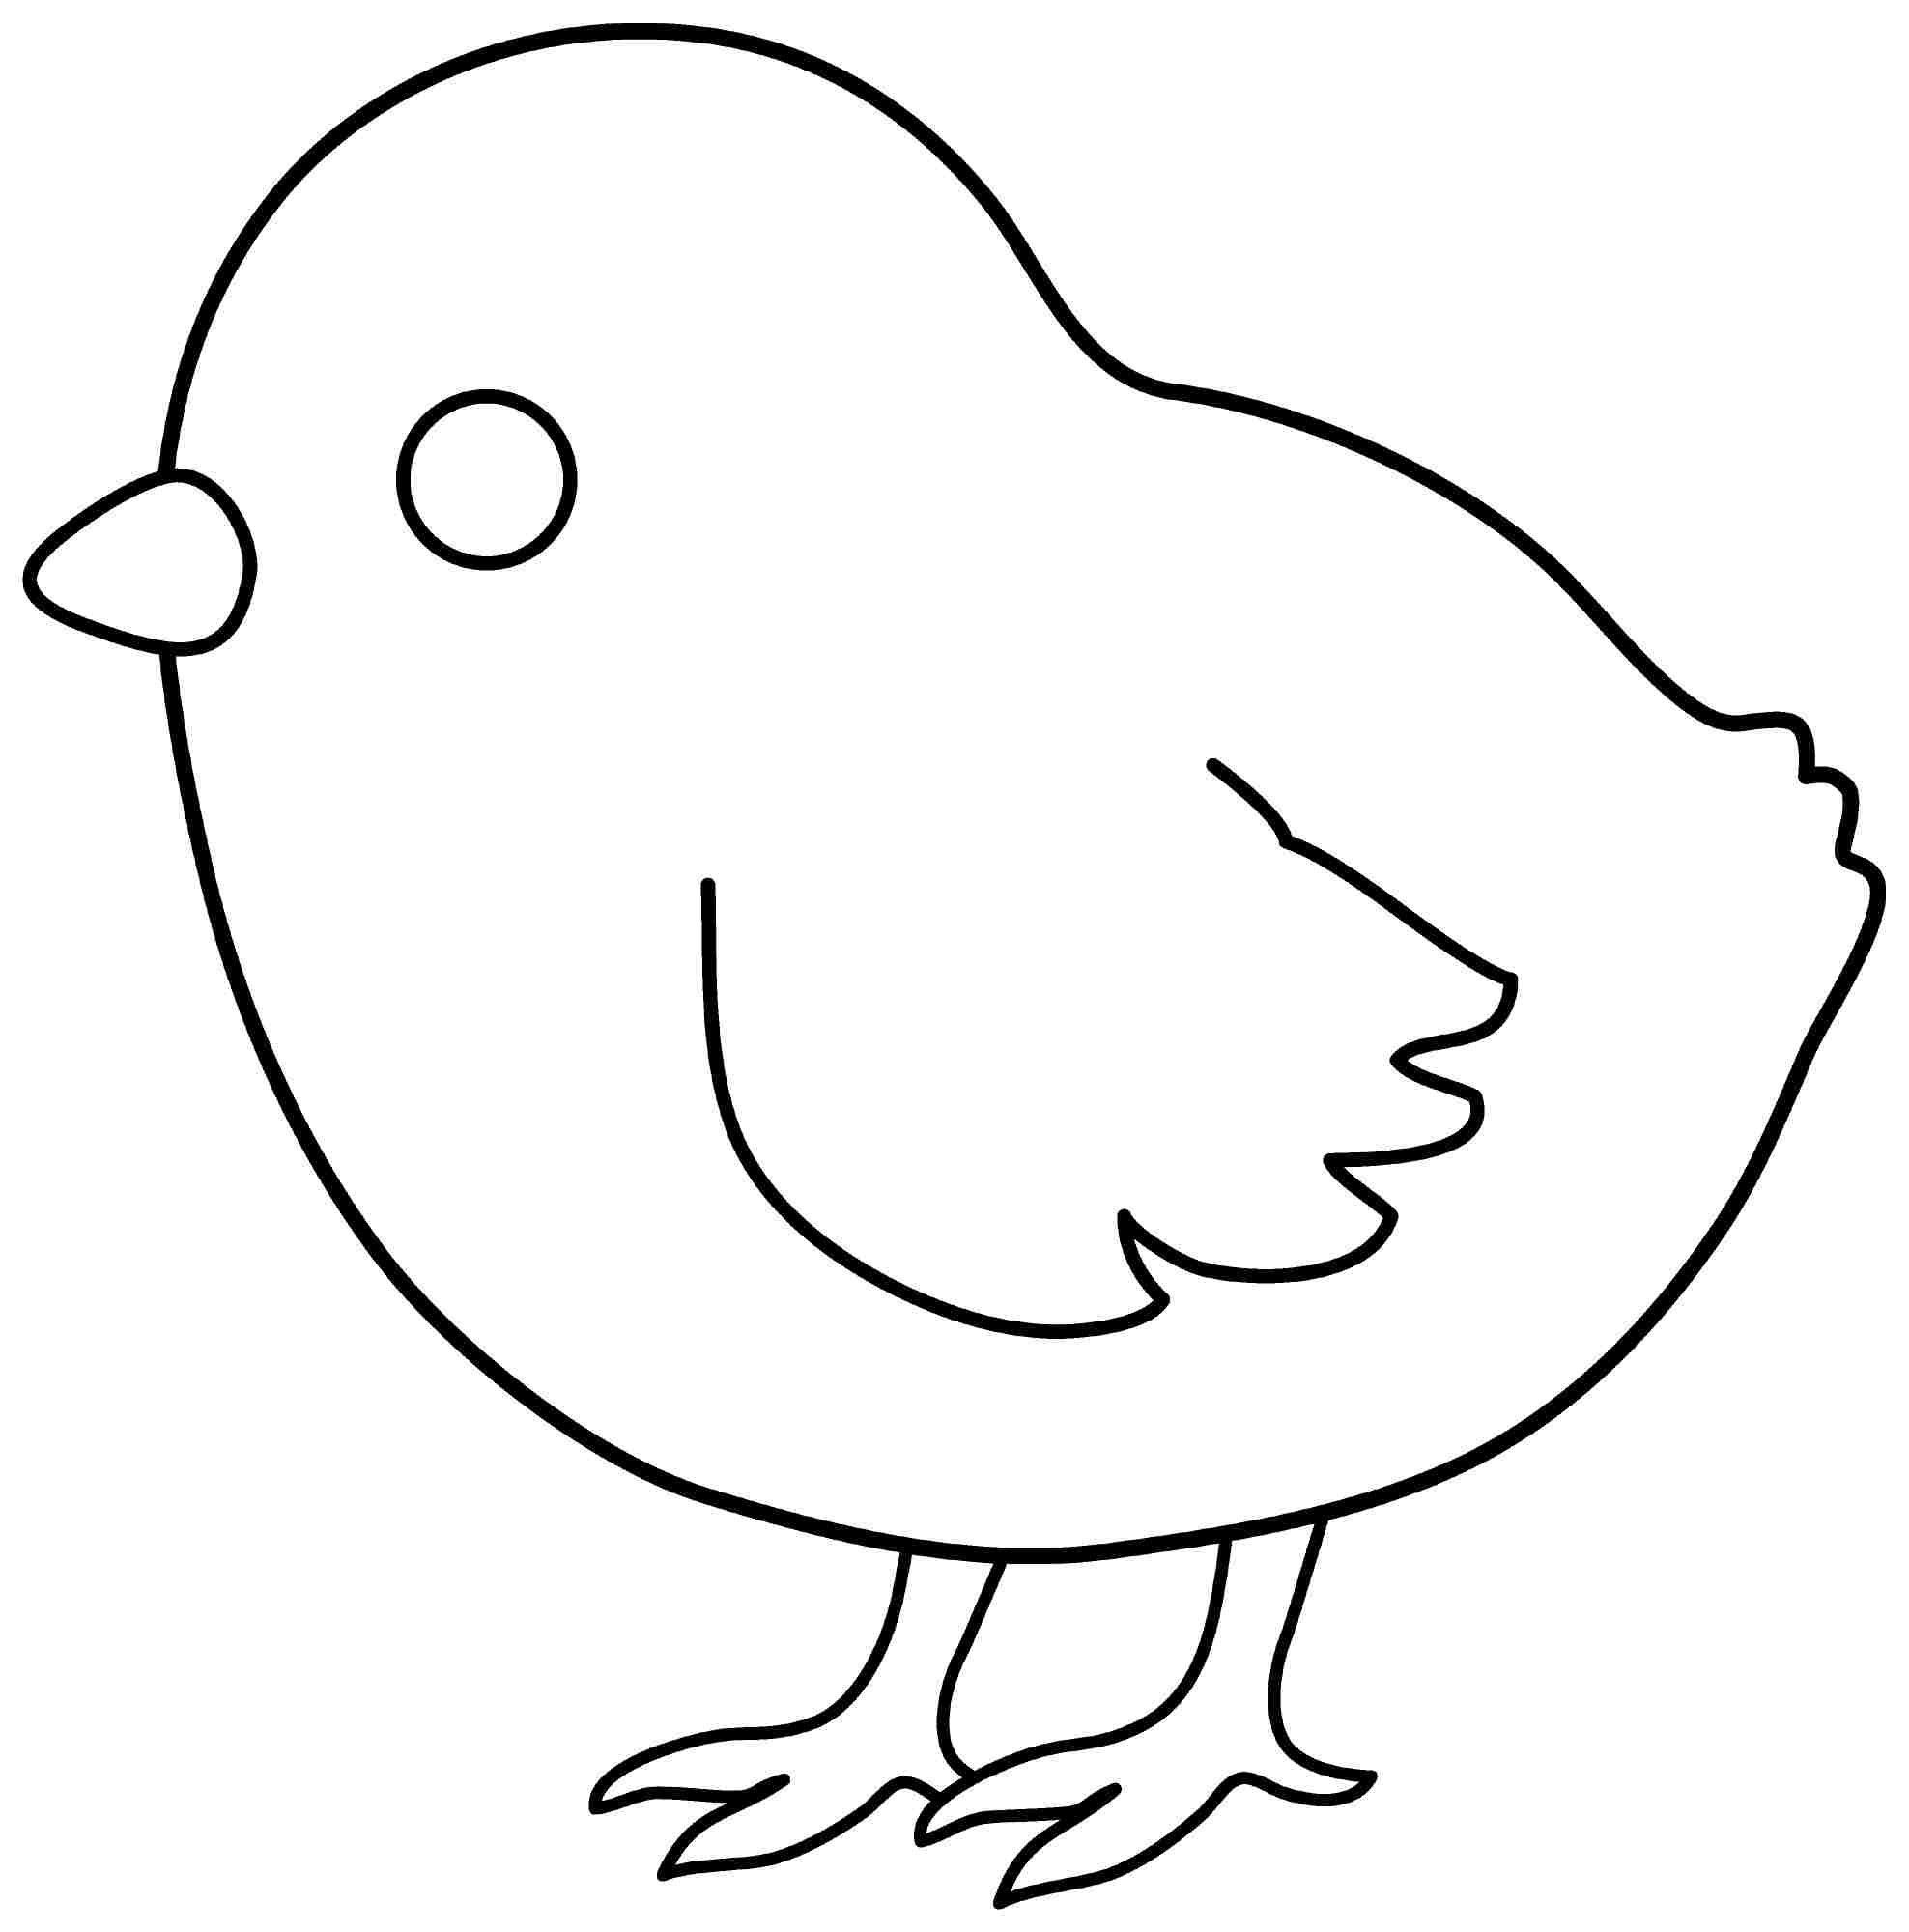 chicken coloring two chickens coloring page pitara kids network coloring chicken